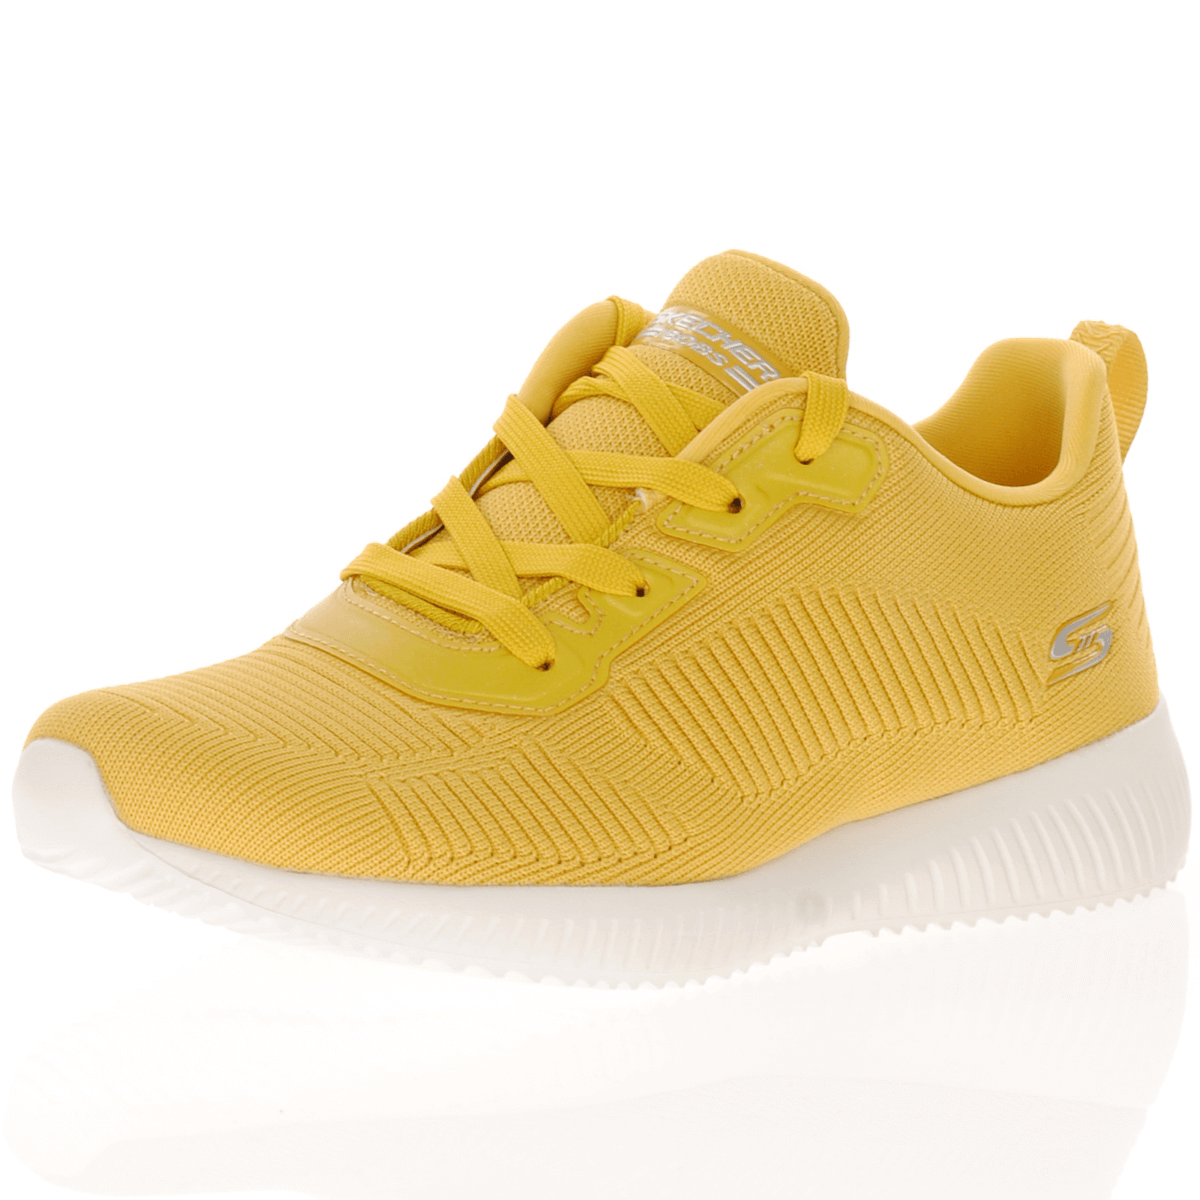 barato calcular Conquistador  Skechers - Bobs Squad Tough, Yellow, The Shoe Horn